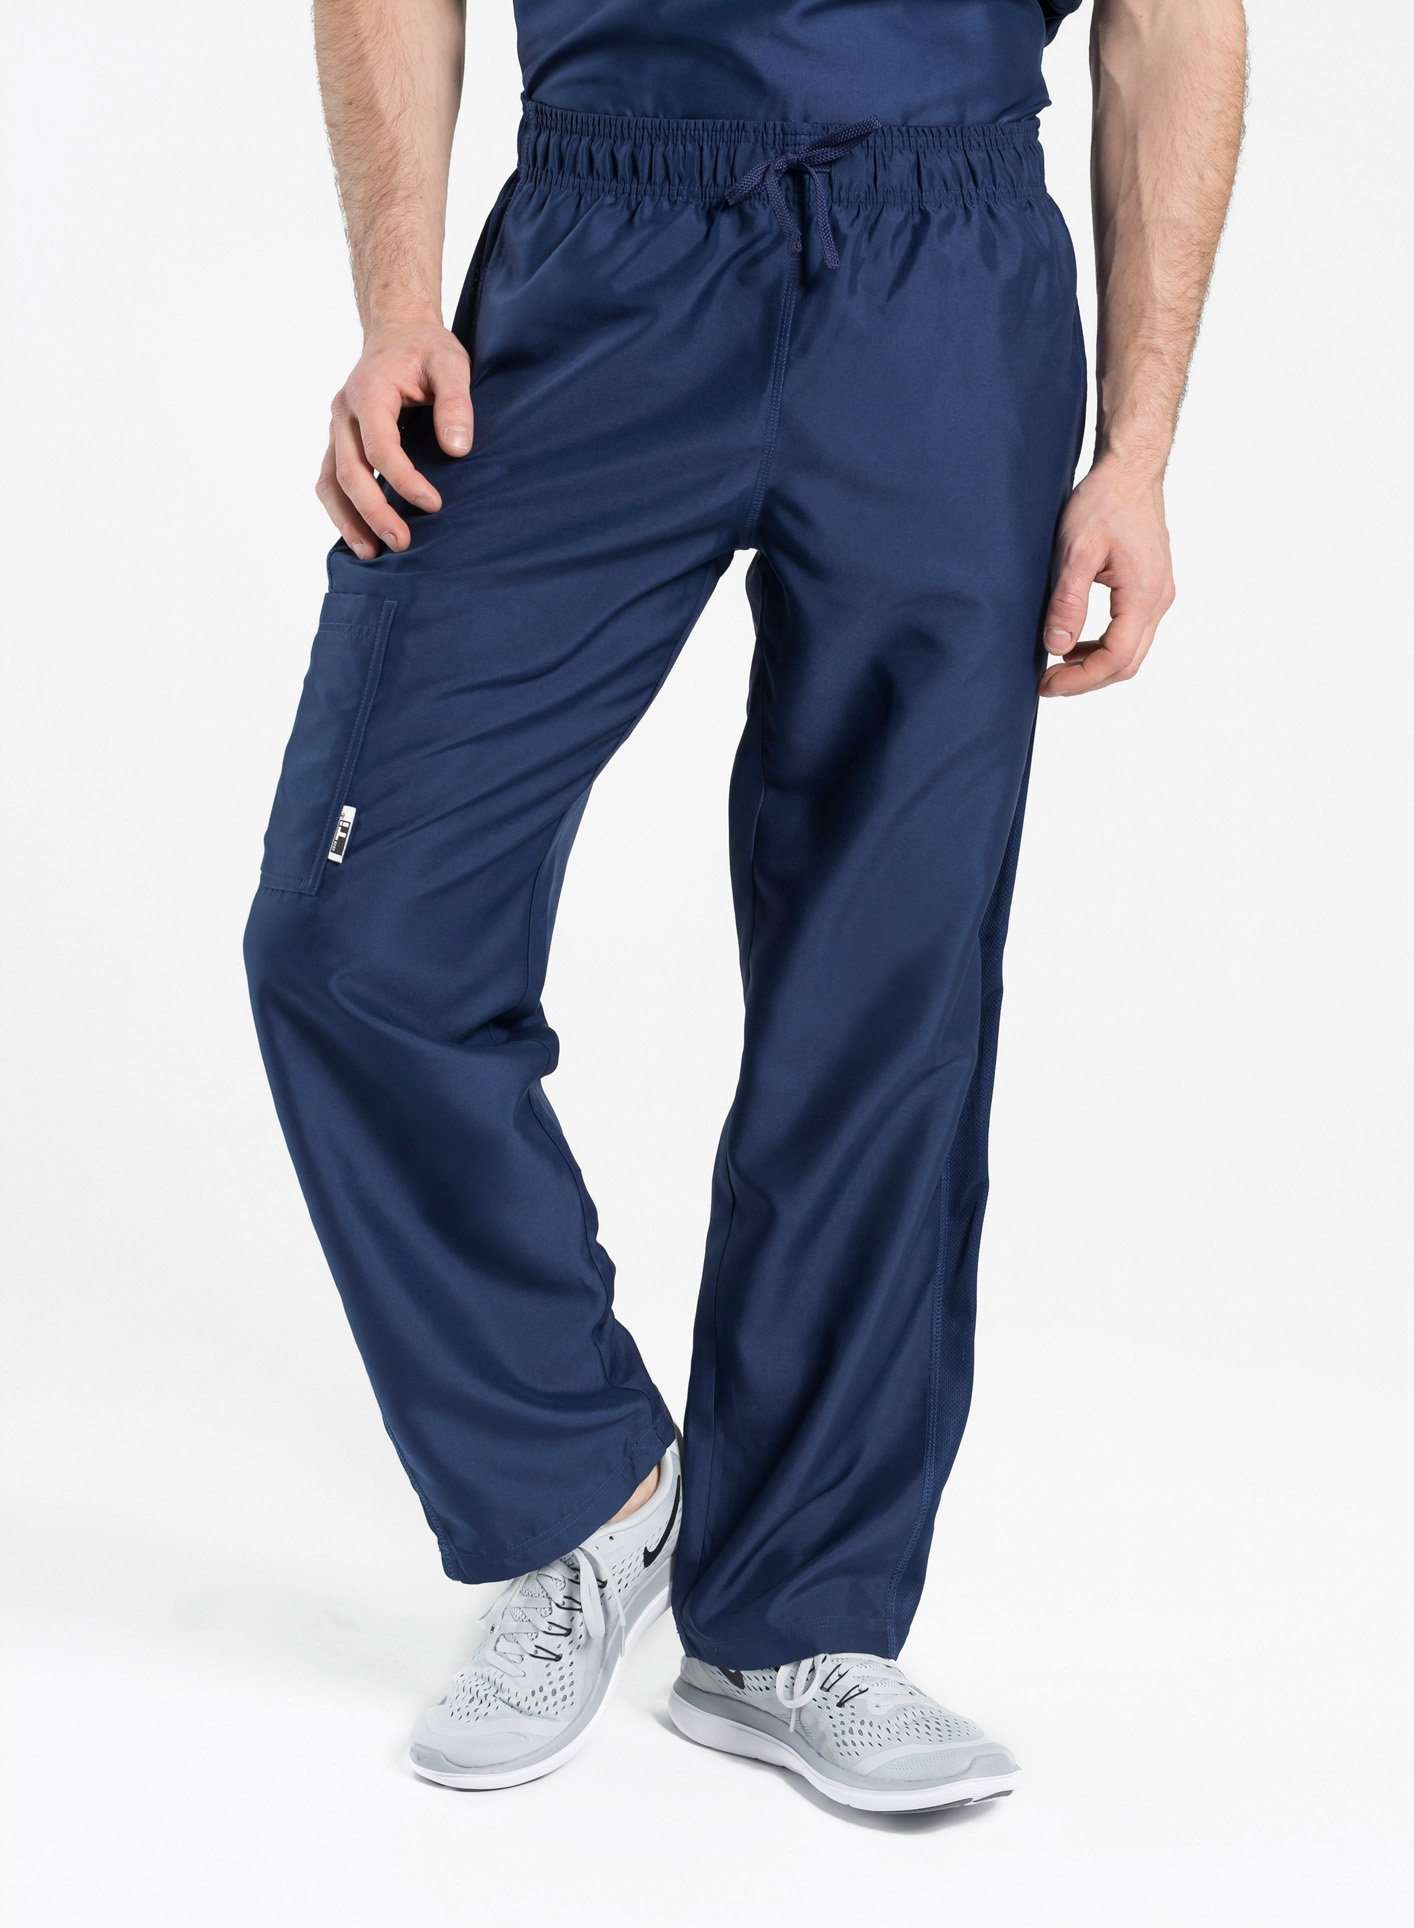 mens Elements short and tall relaxed fit scrub pants navy blue